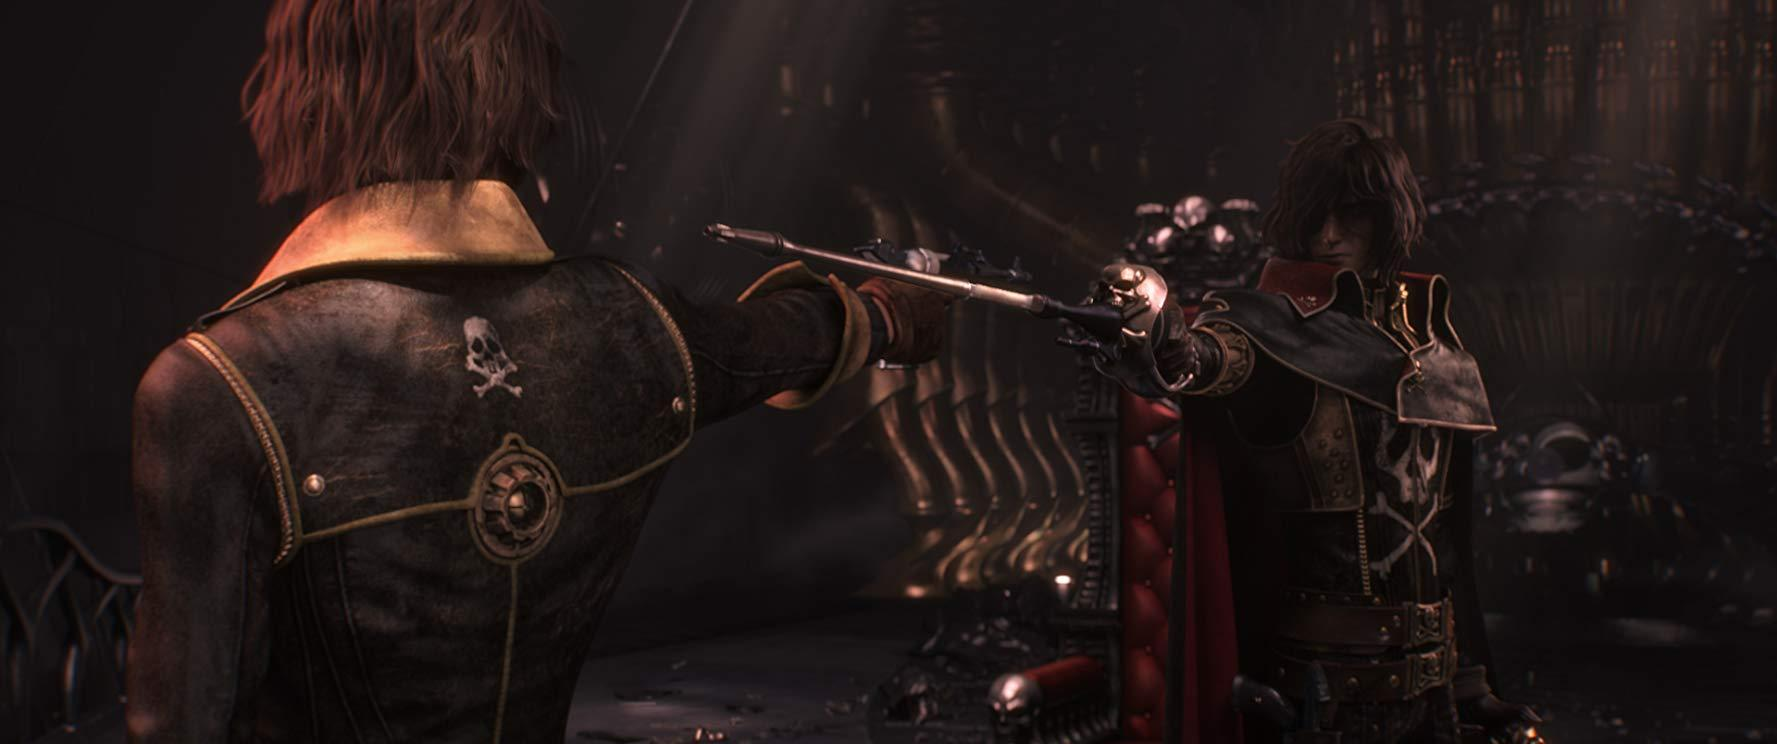 مشاهدة فيلم Harlock: Space Pirate (2013) مترجم HD اون لاين